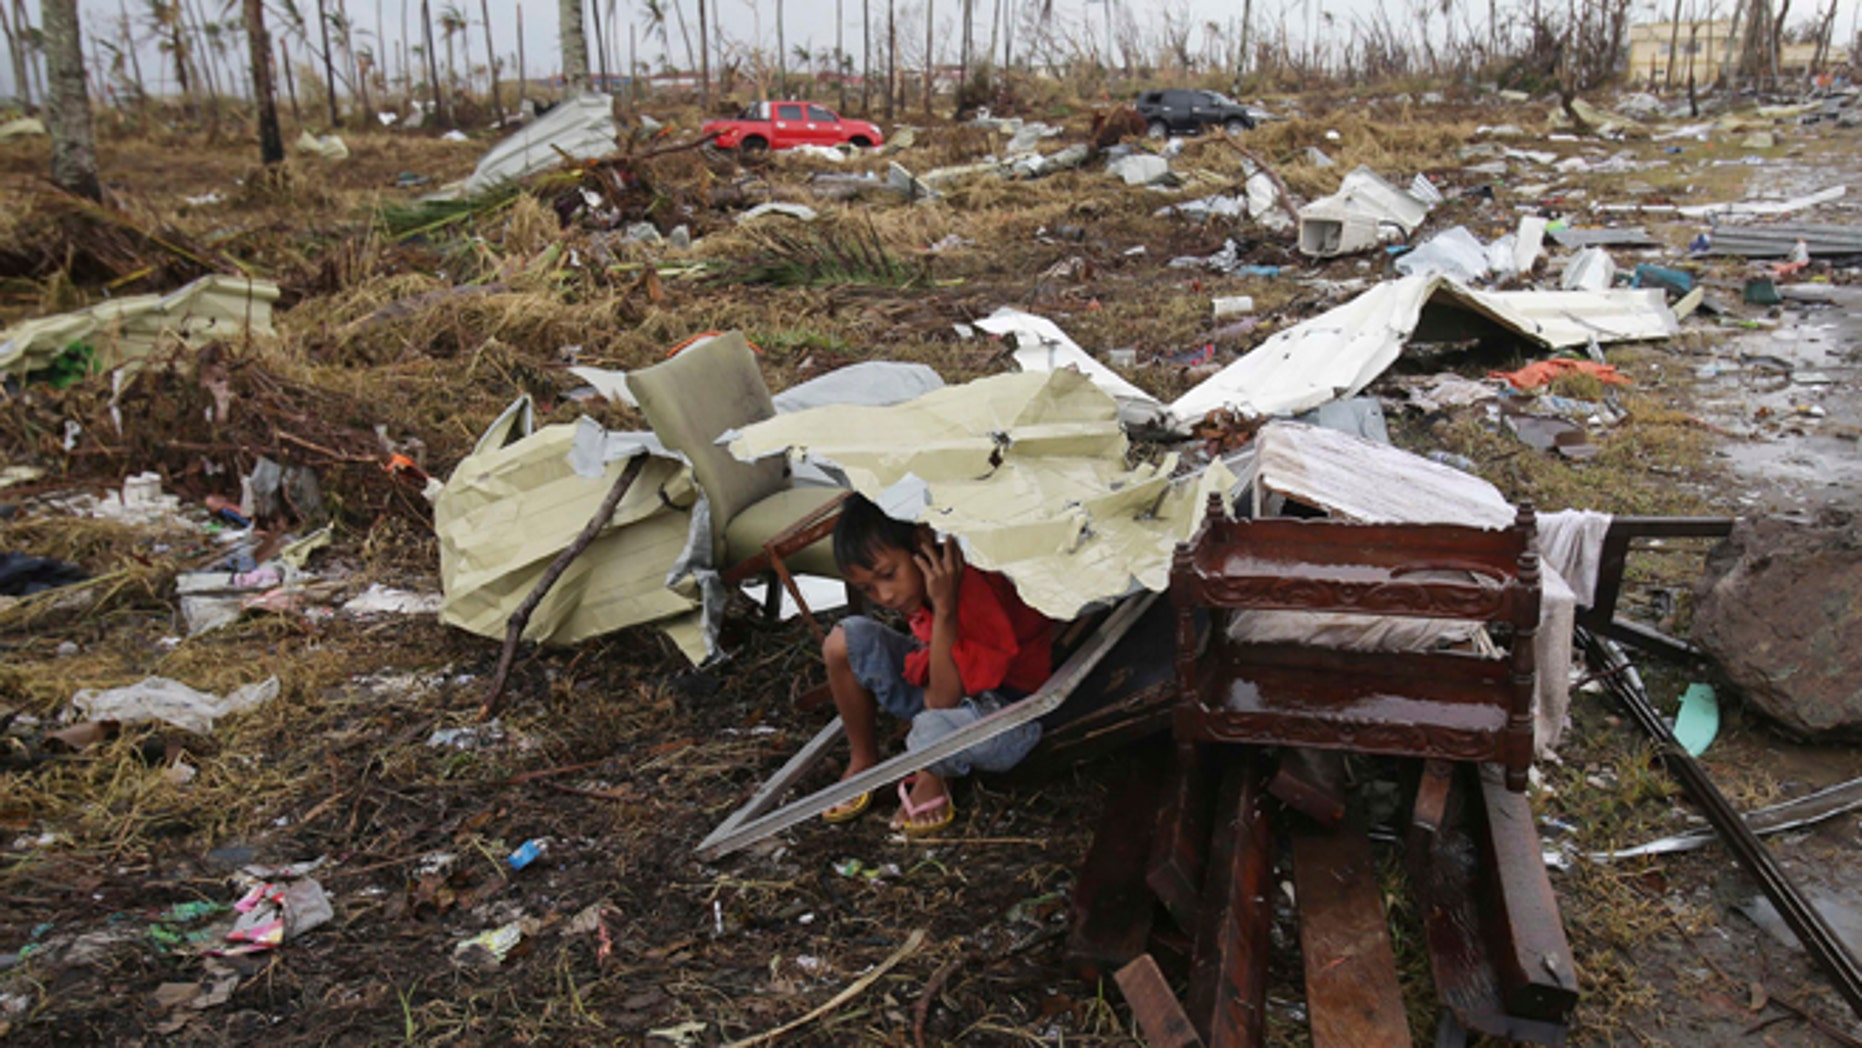 A young survivor uses the remains of some parts of a house to shield him from rain in Tacloban city, Leyte province, central Philippines on Tuesday, Nov. 12, 2013.